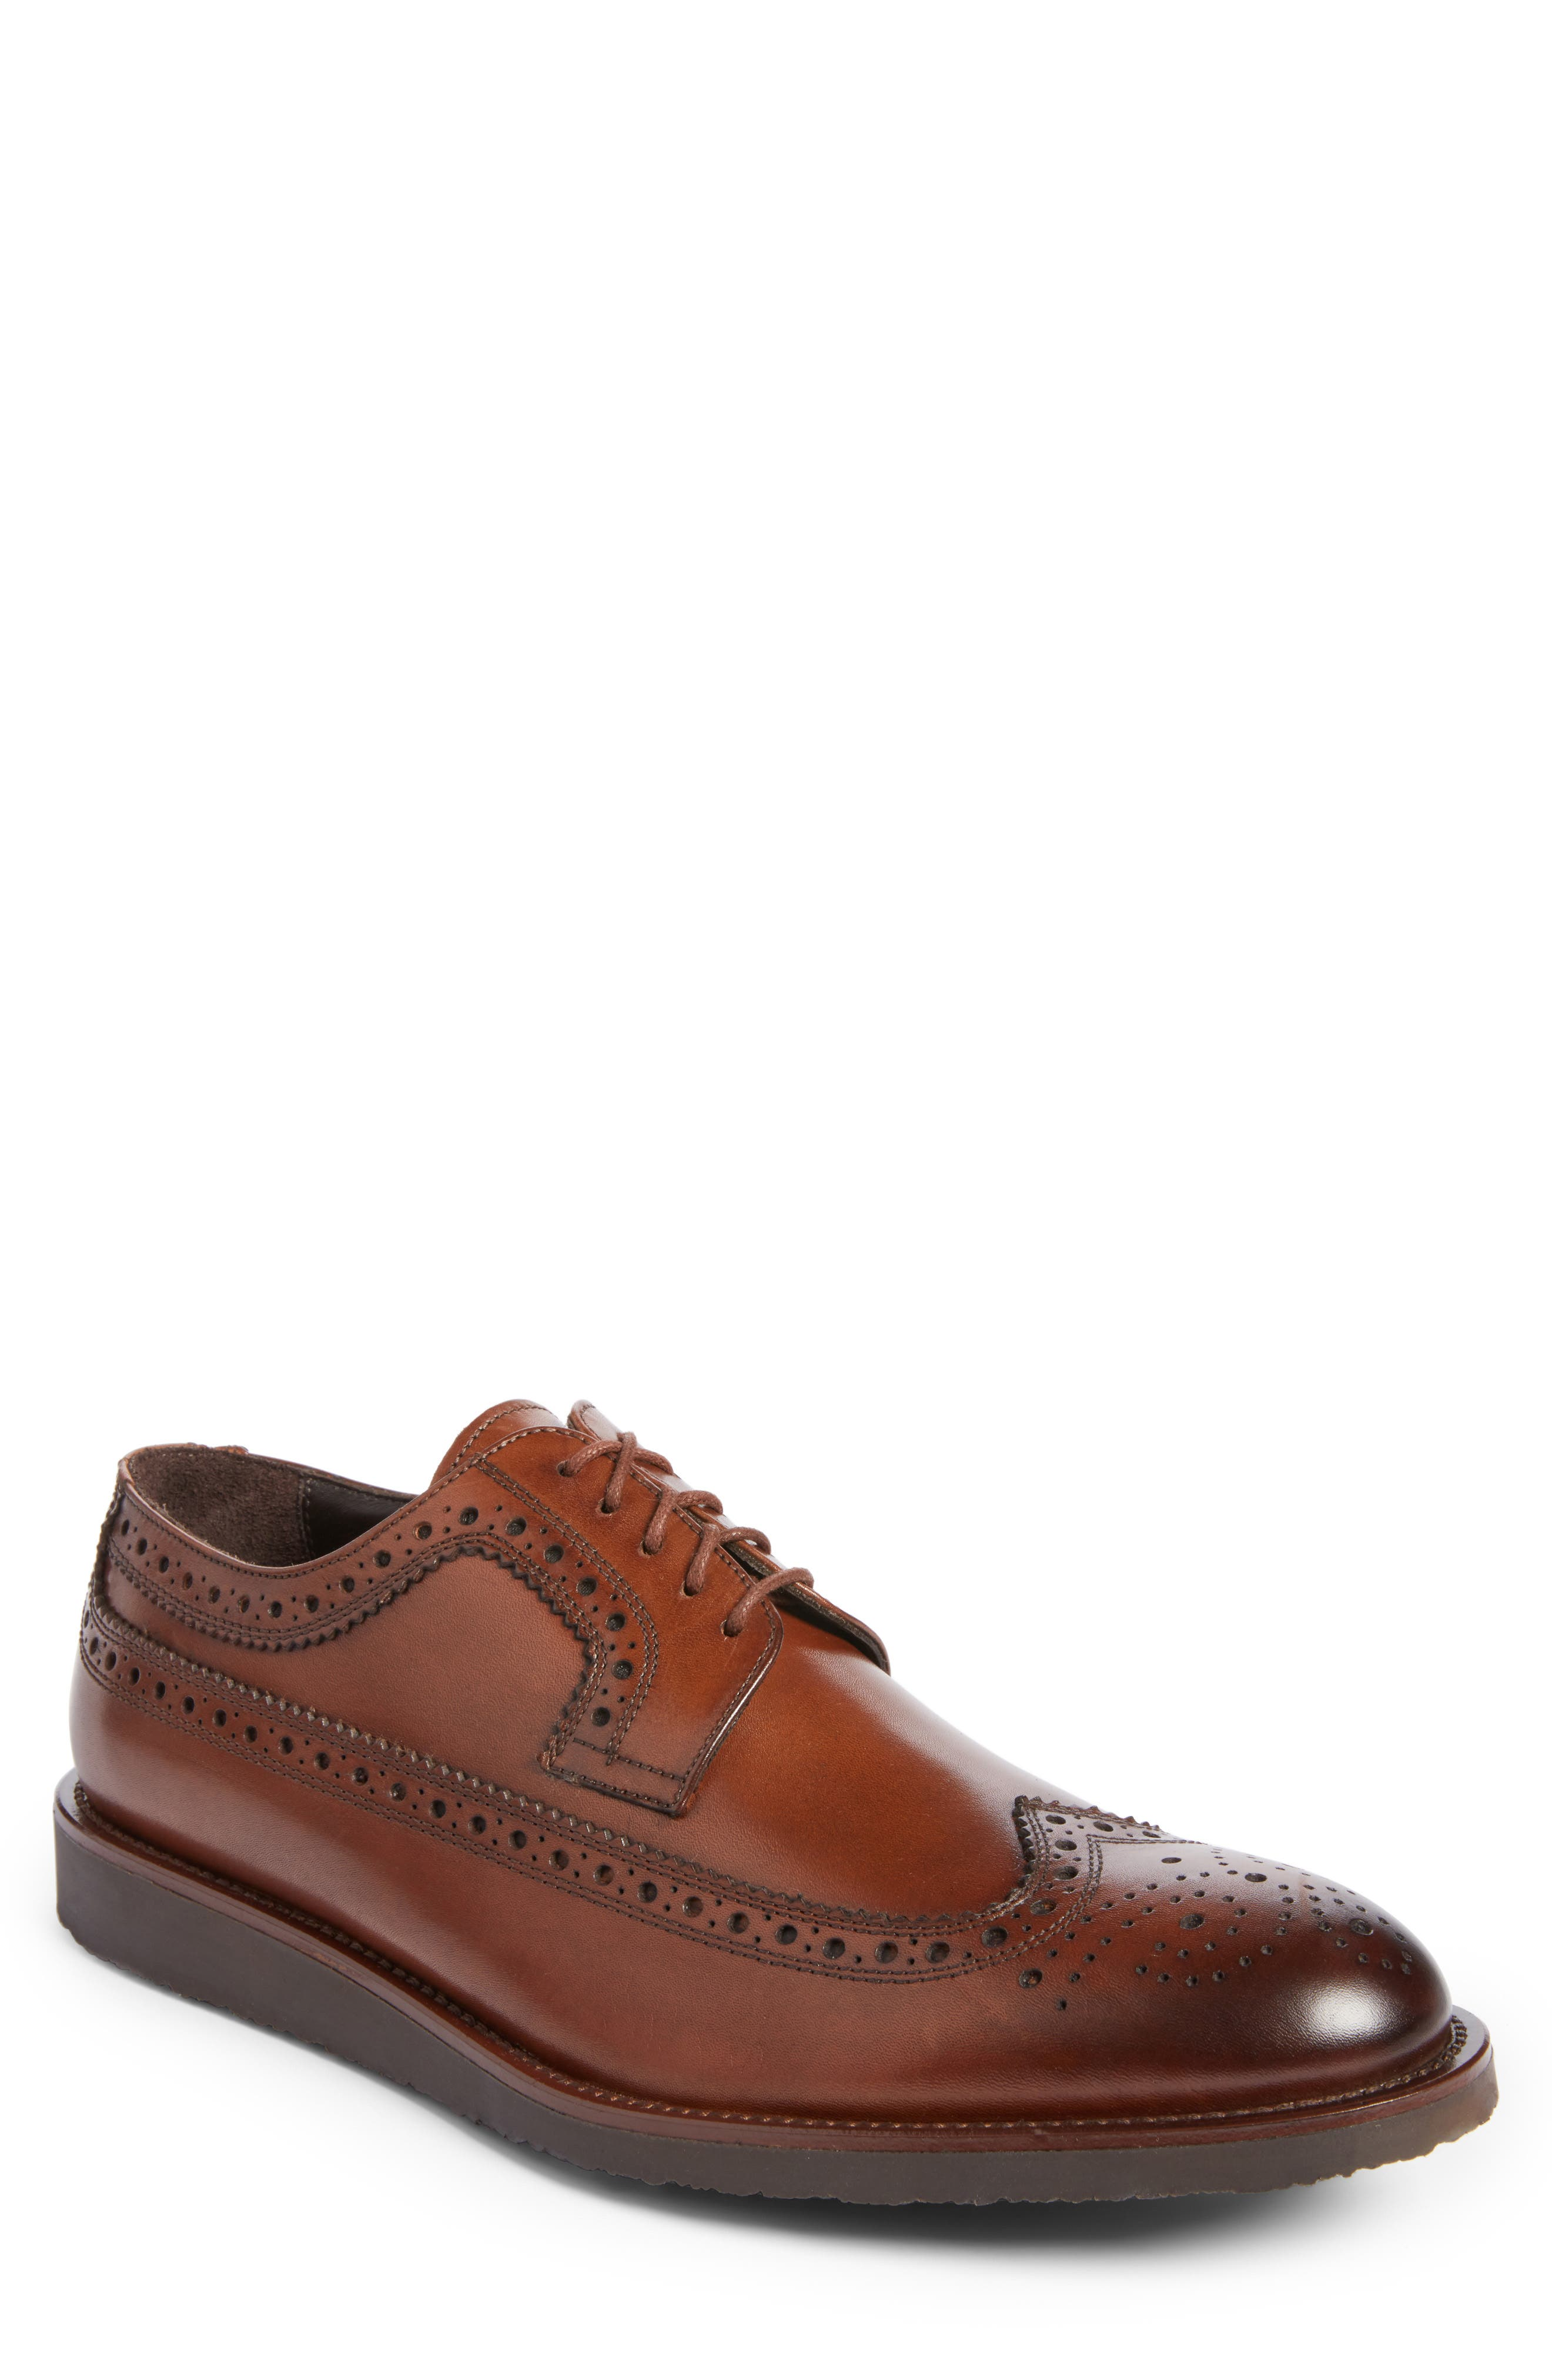 Hillsdale Longwing Derby,                         Main,                         color, Tan 38 Ant